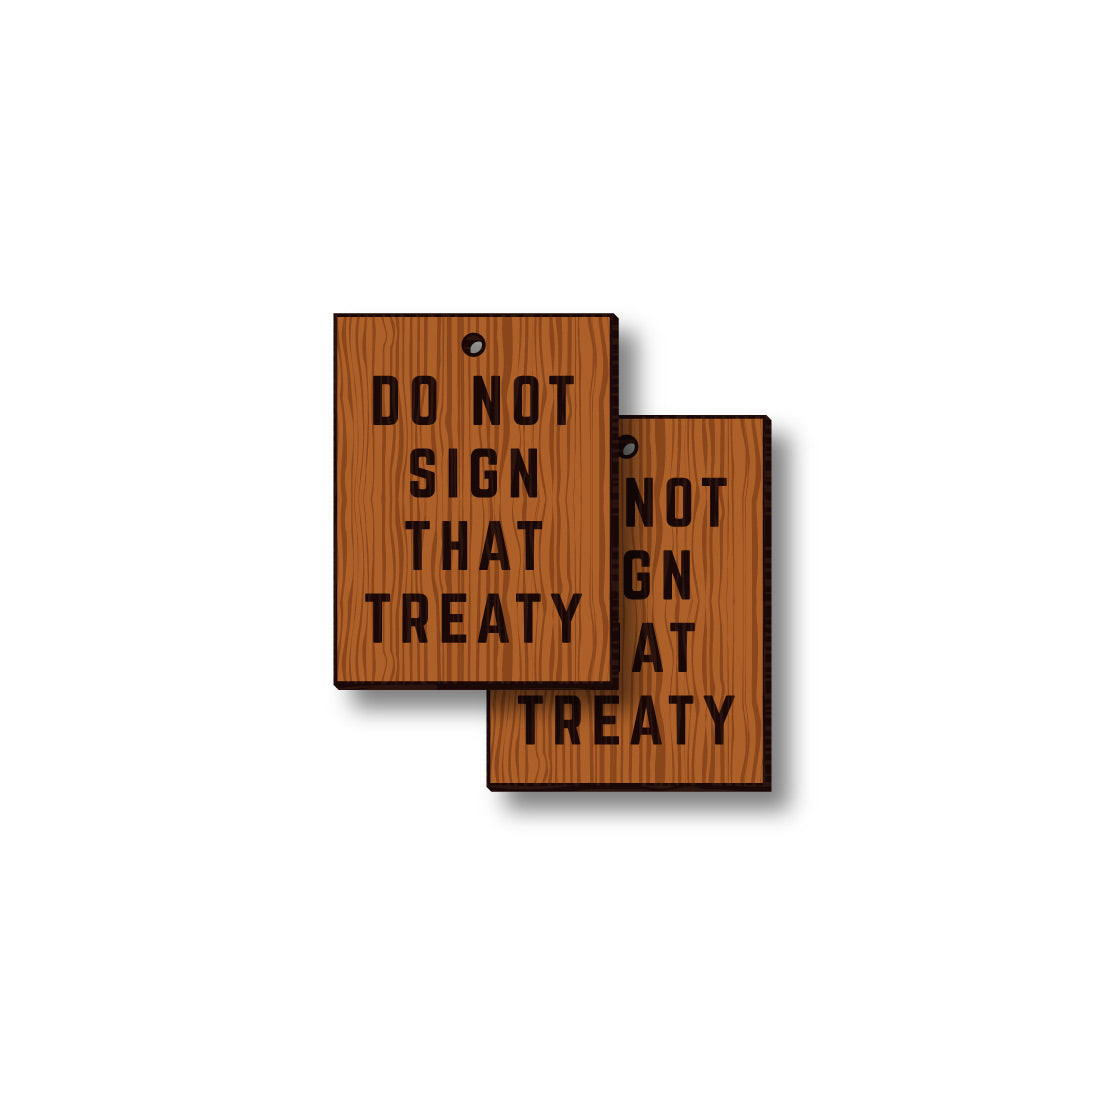 David Bernie Shop Laser Cut Cherry Wood Earrings Do Not Sign That Treaty